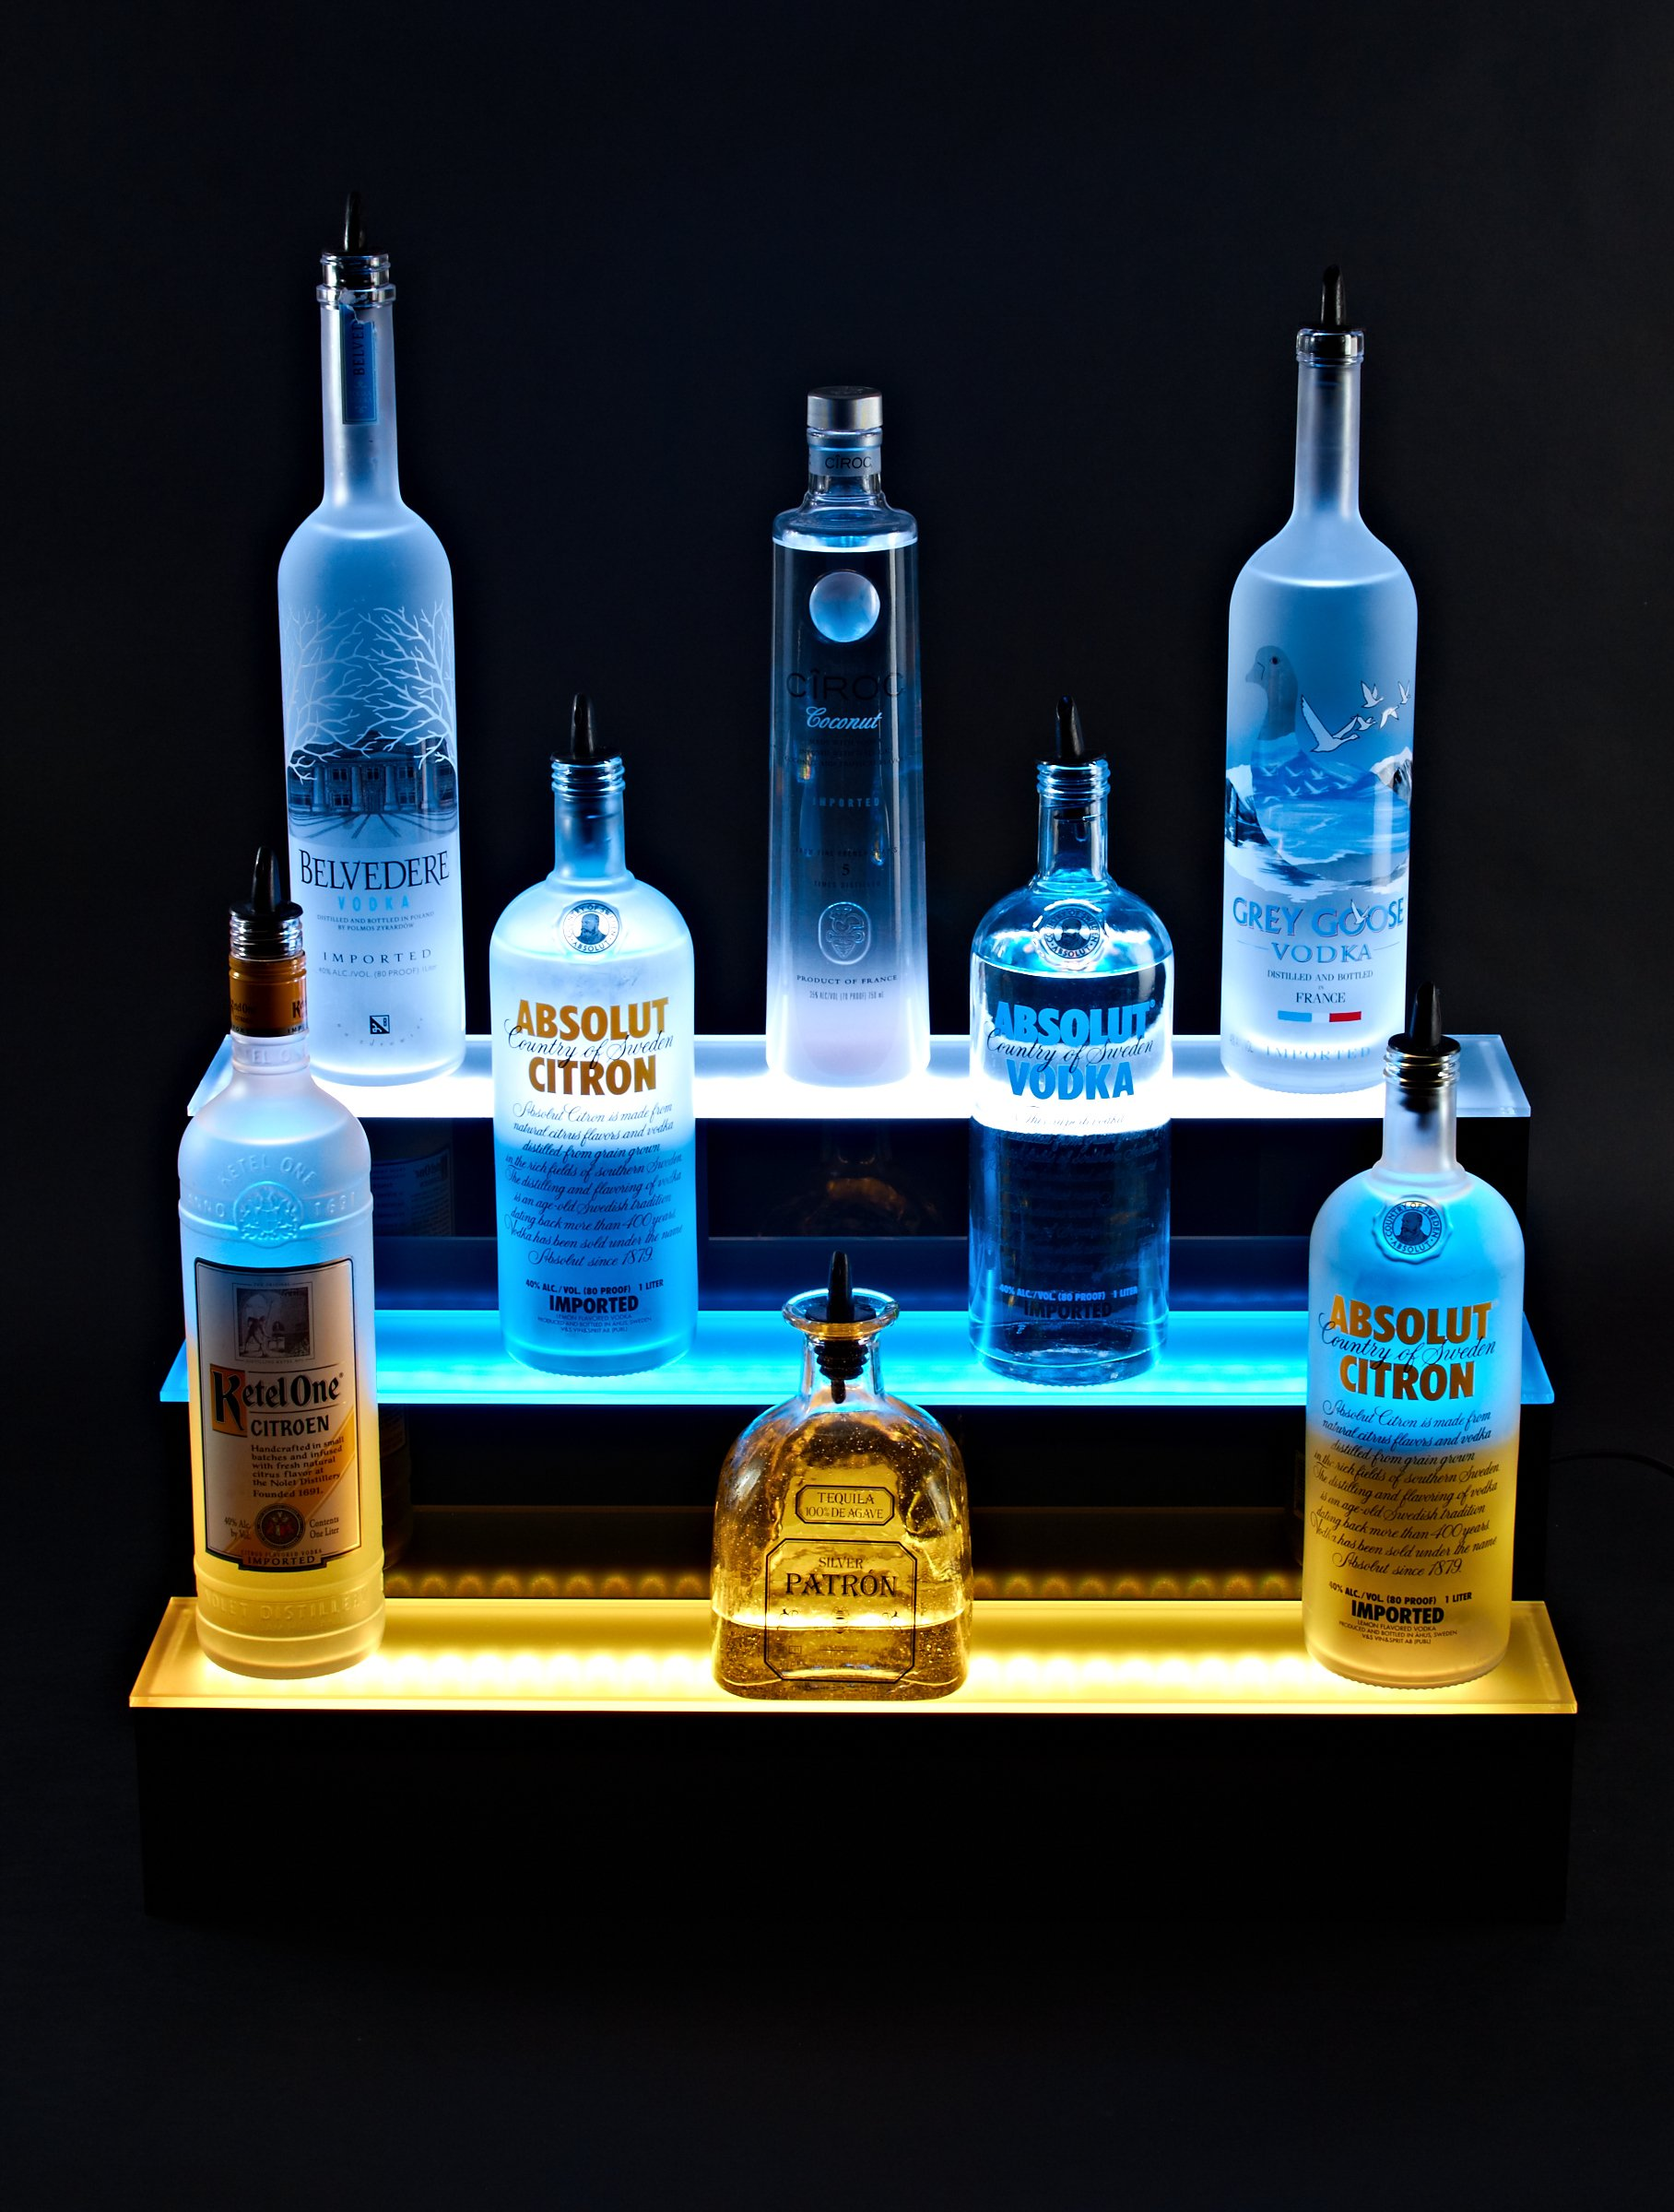 24'' inch 3 Tier Lighted Liquor Shelves Bottle Display LED |Home bar Lights by Armana Productions (Image #6)